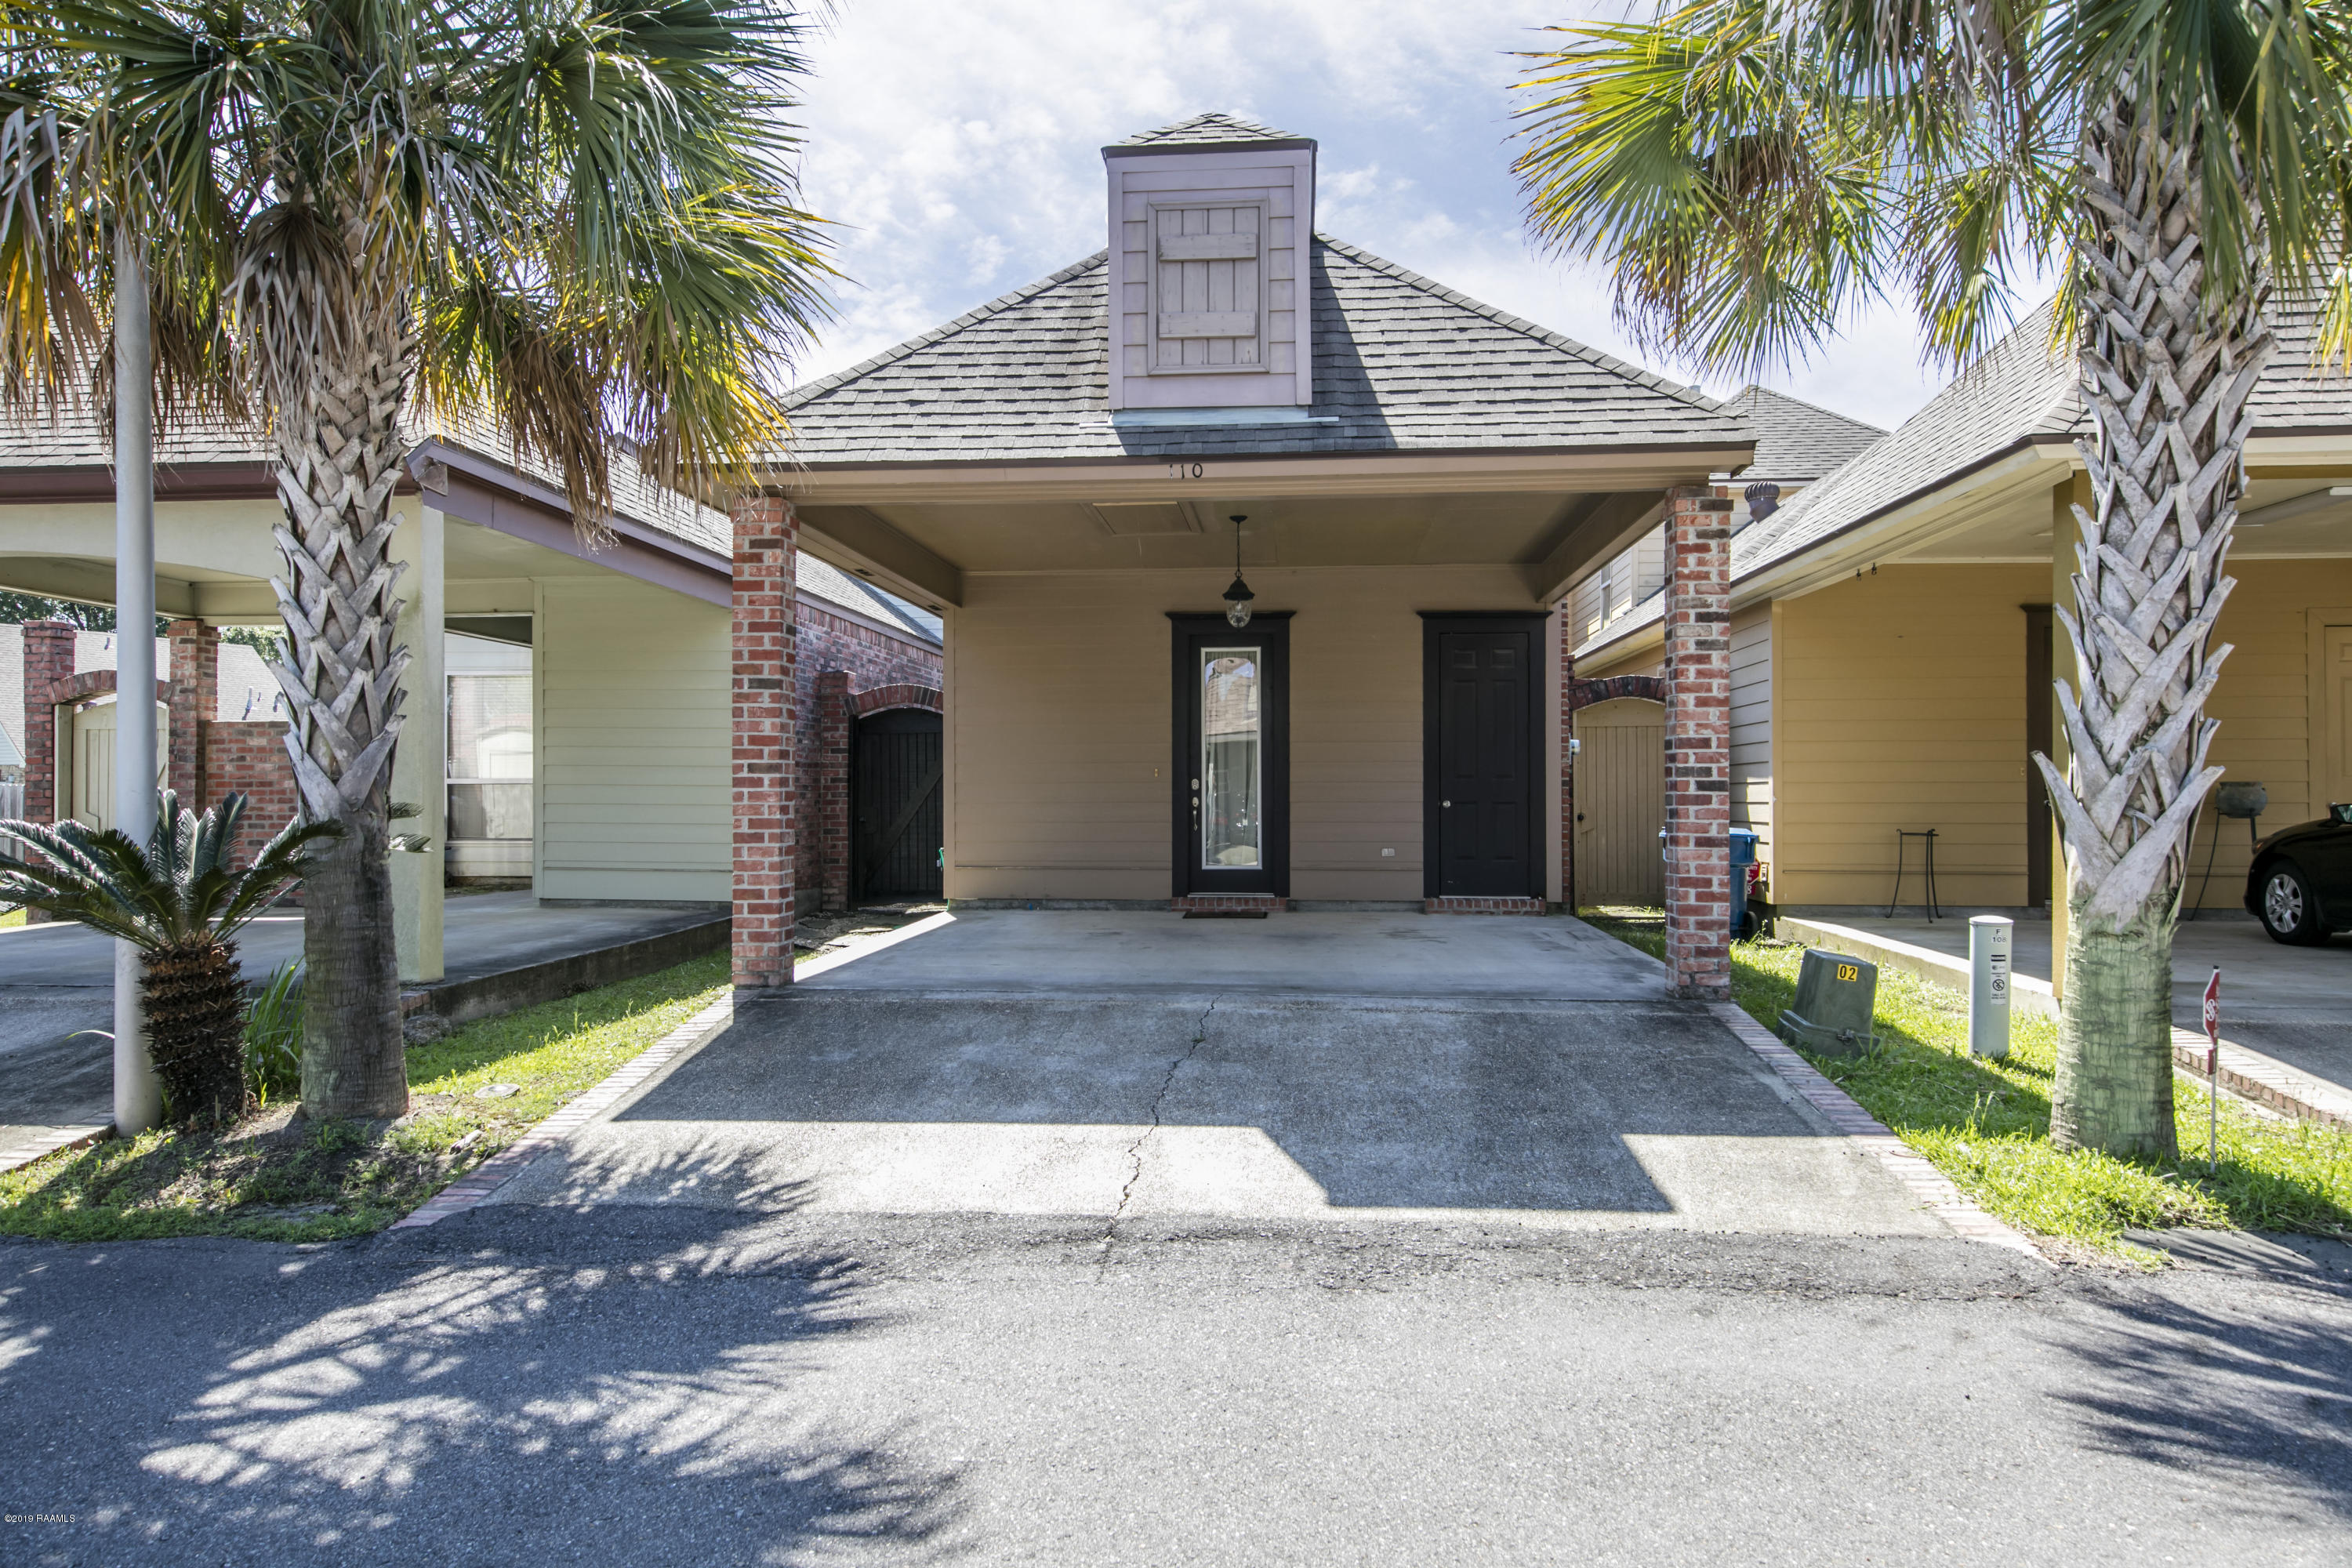 110 Coconut Grove Circle, Lafayette, LA 70508 Photo #1